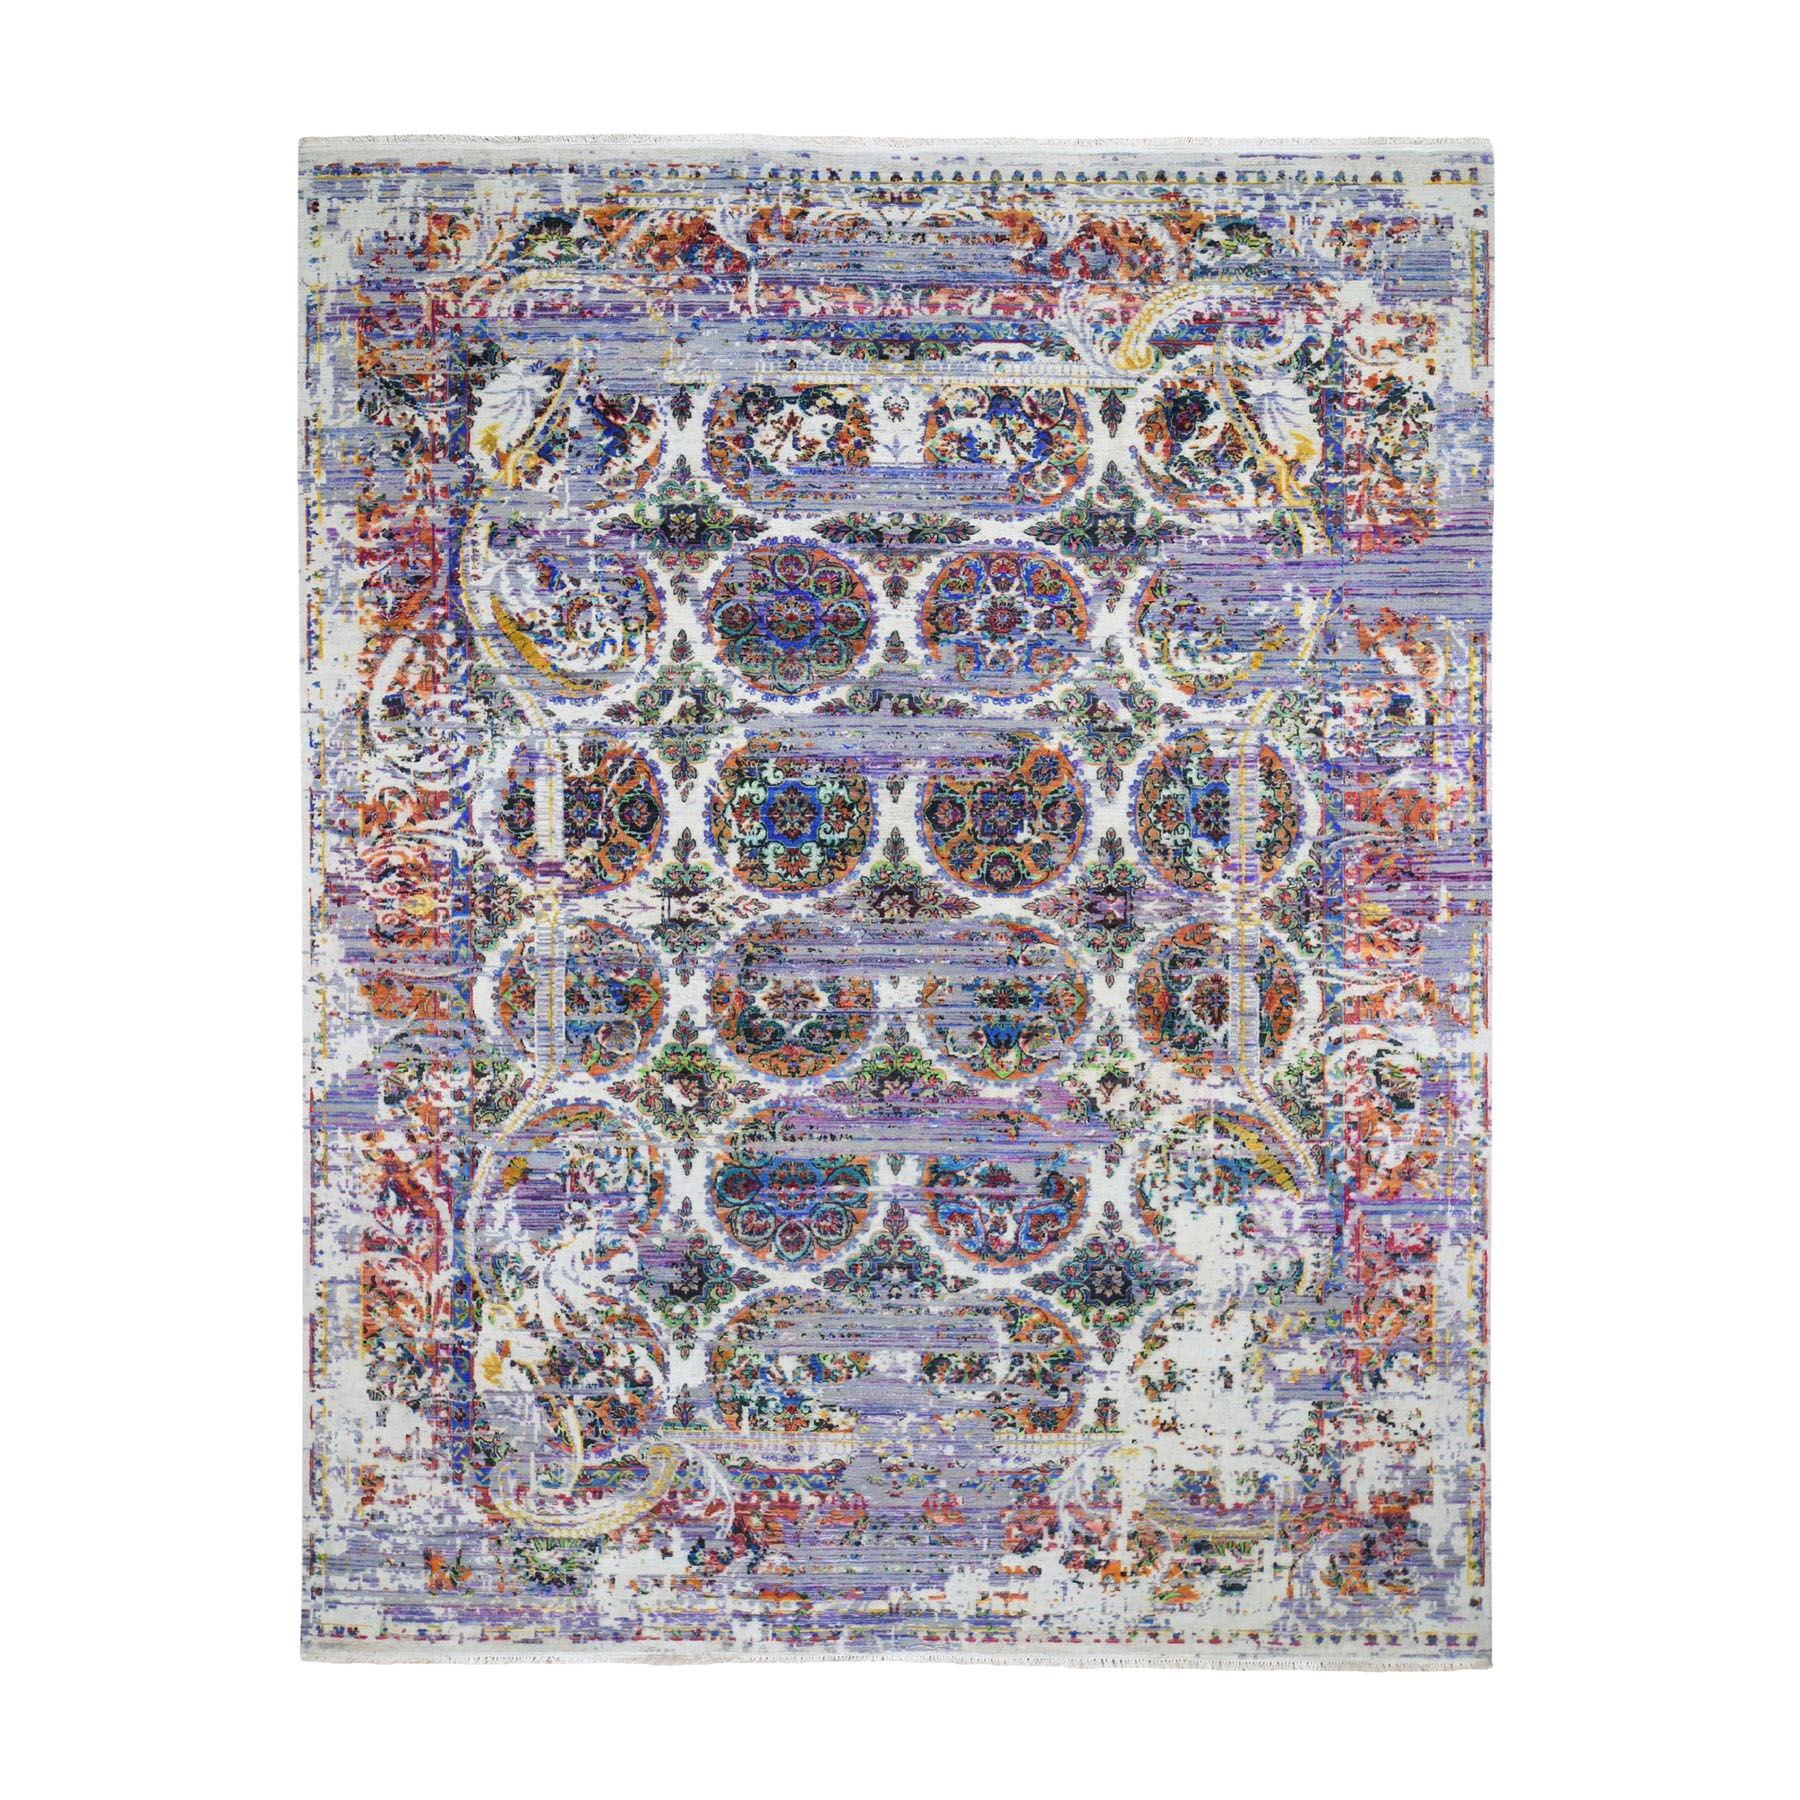 modern & contemporary rugs LUV422415